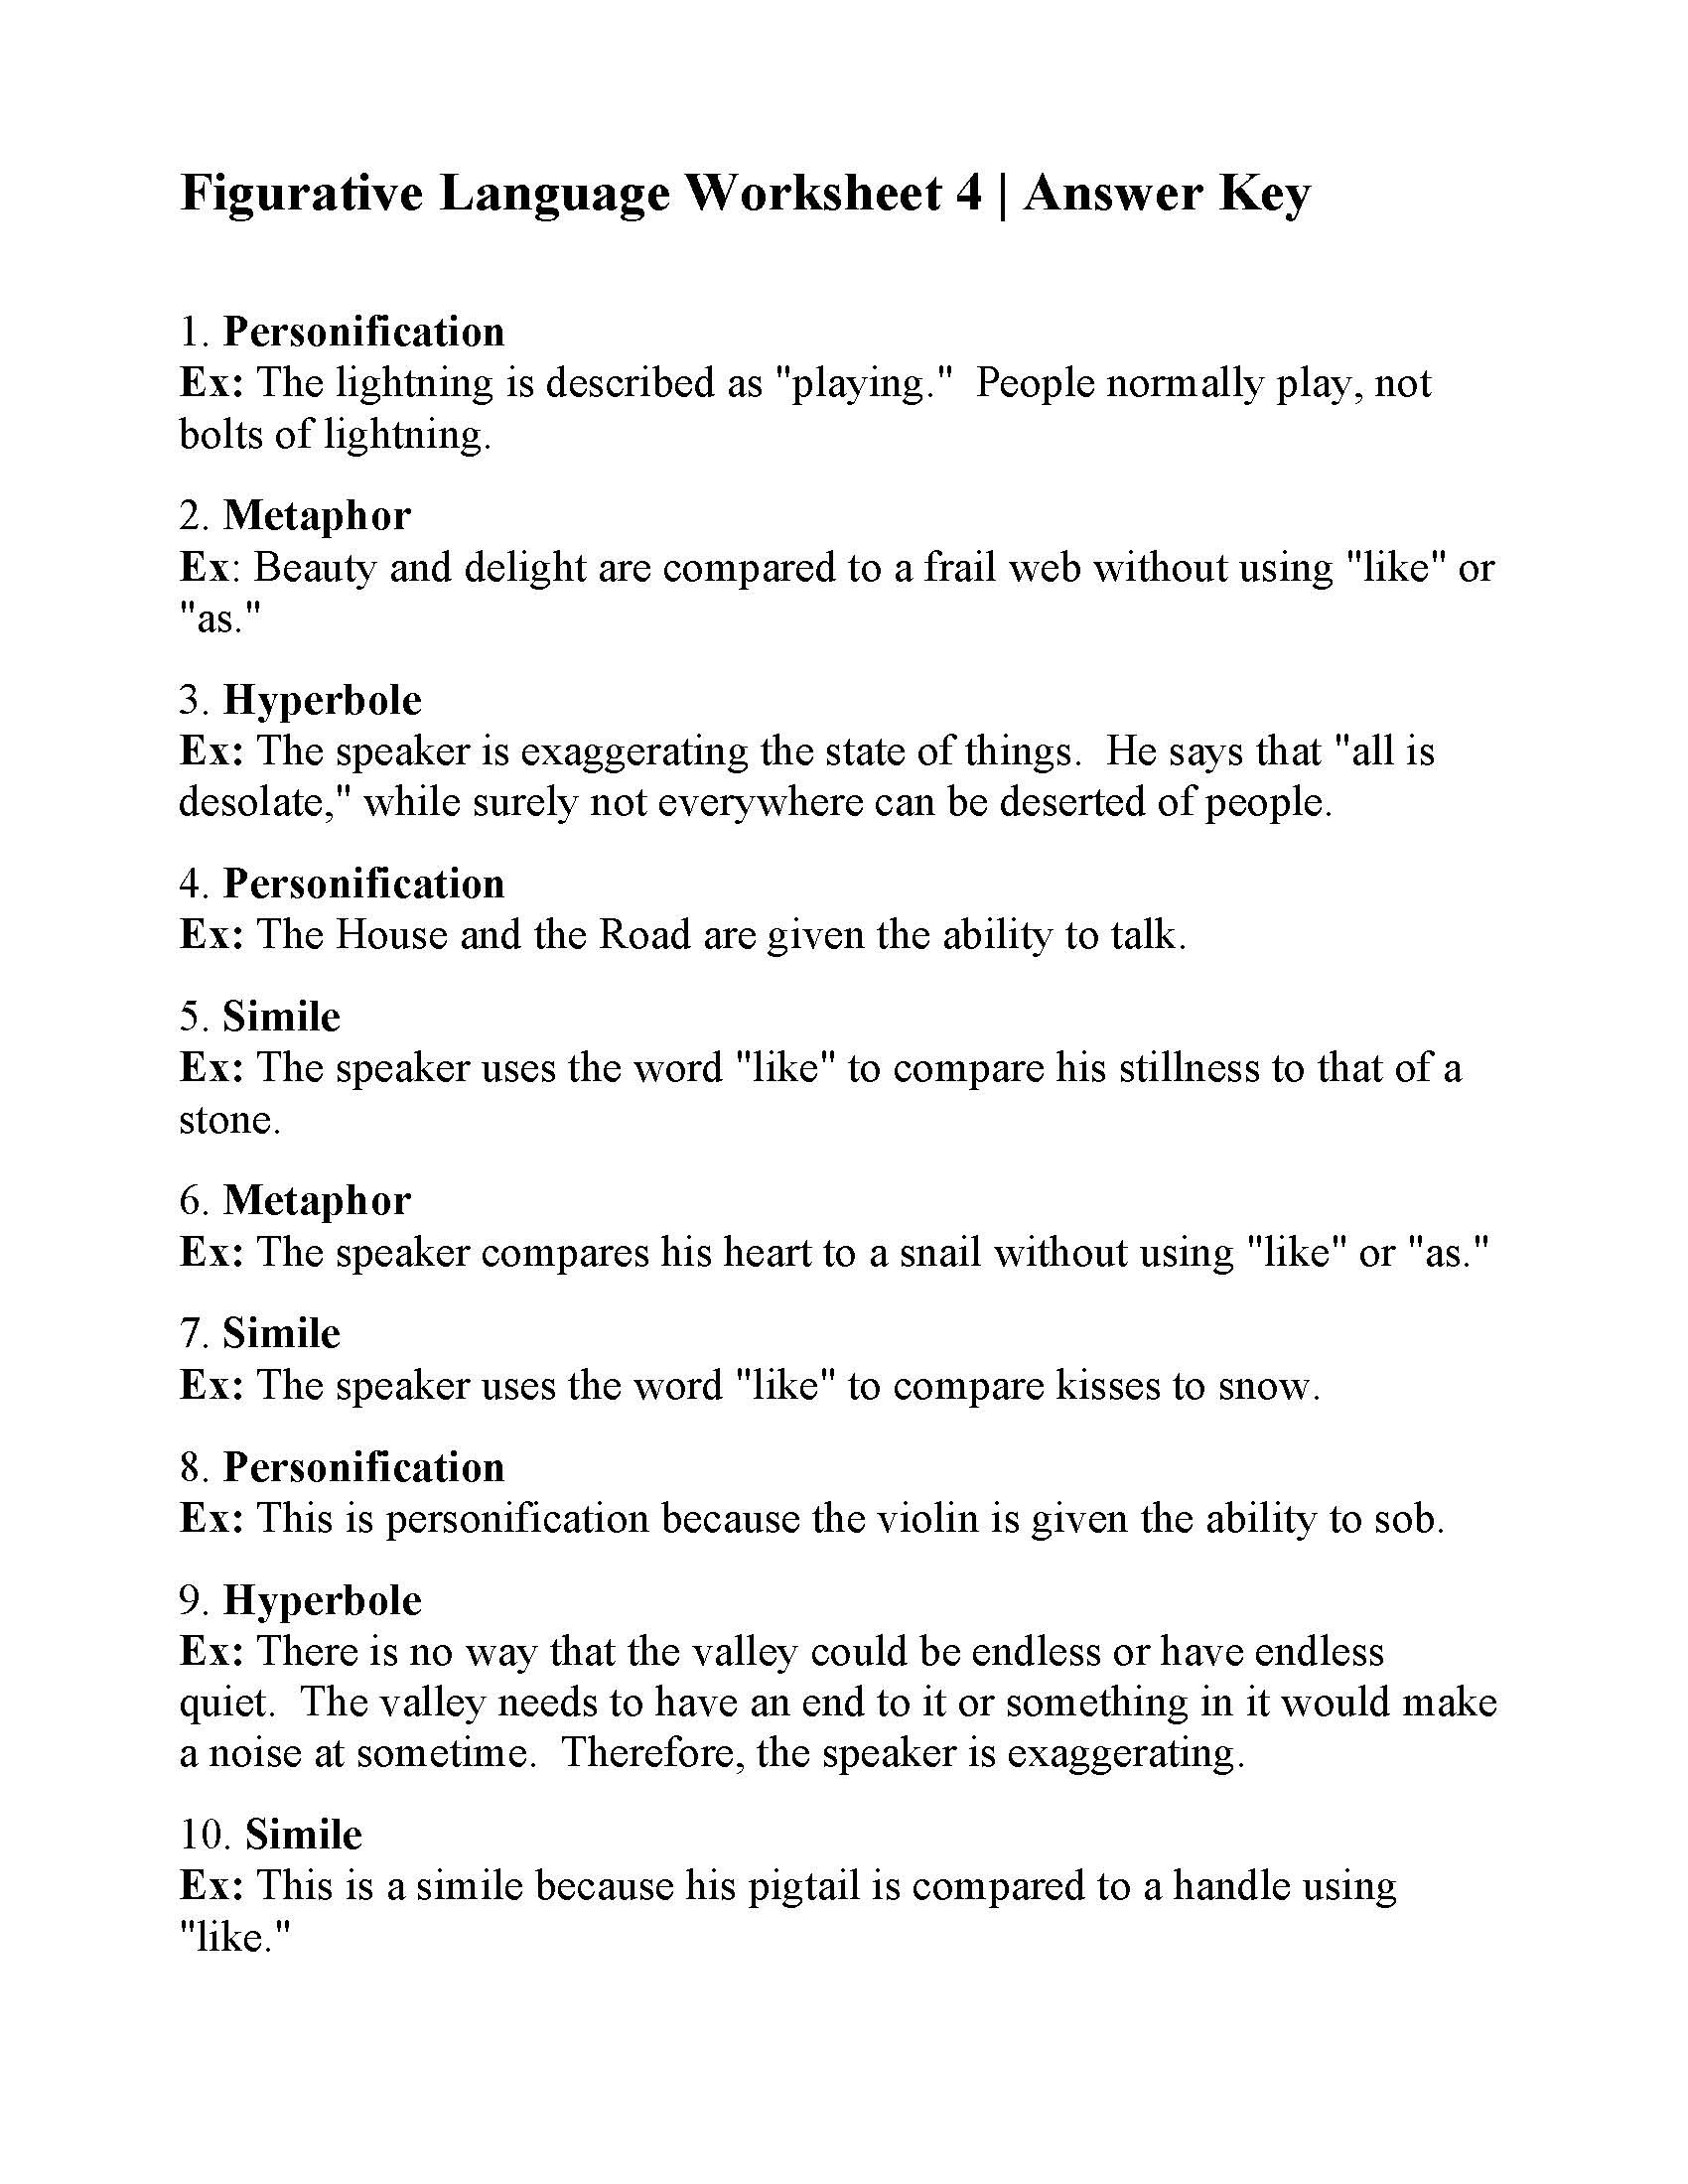 Personification Worksheets for Middle School Simile Worksheets for 6th Grade